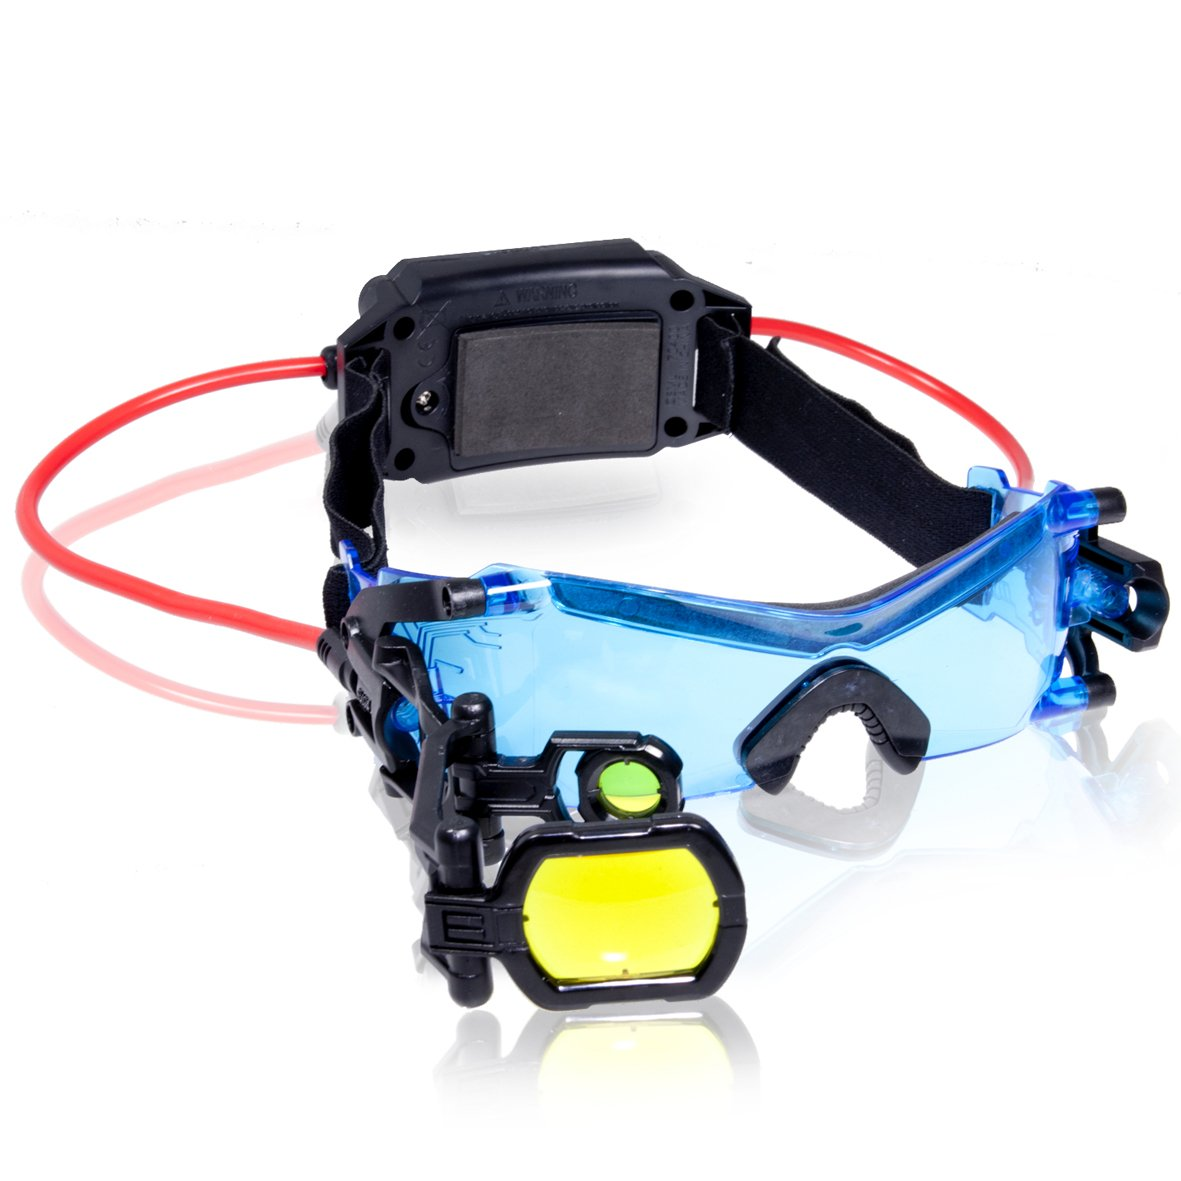 Spy Gear - Night Vision Glasses by Spy Gear (Image #3)